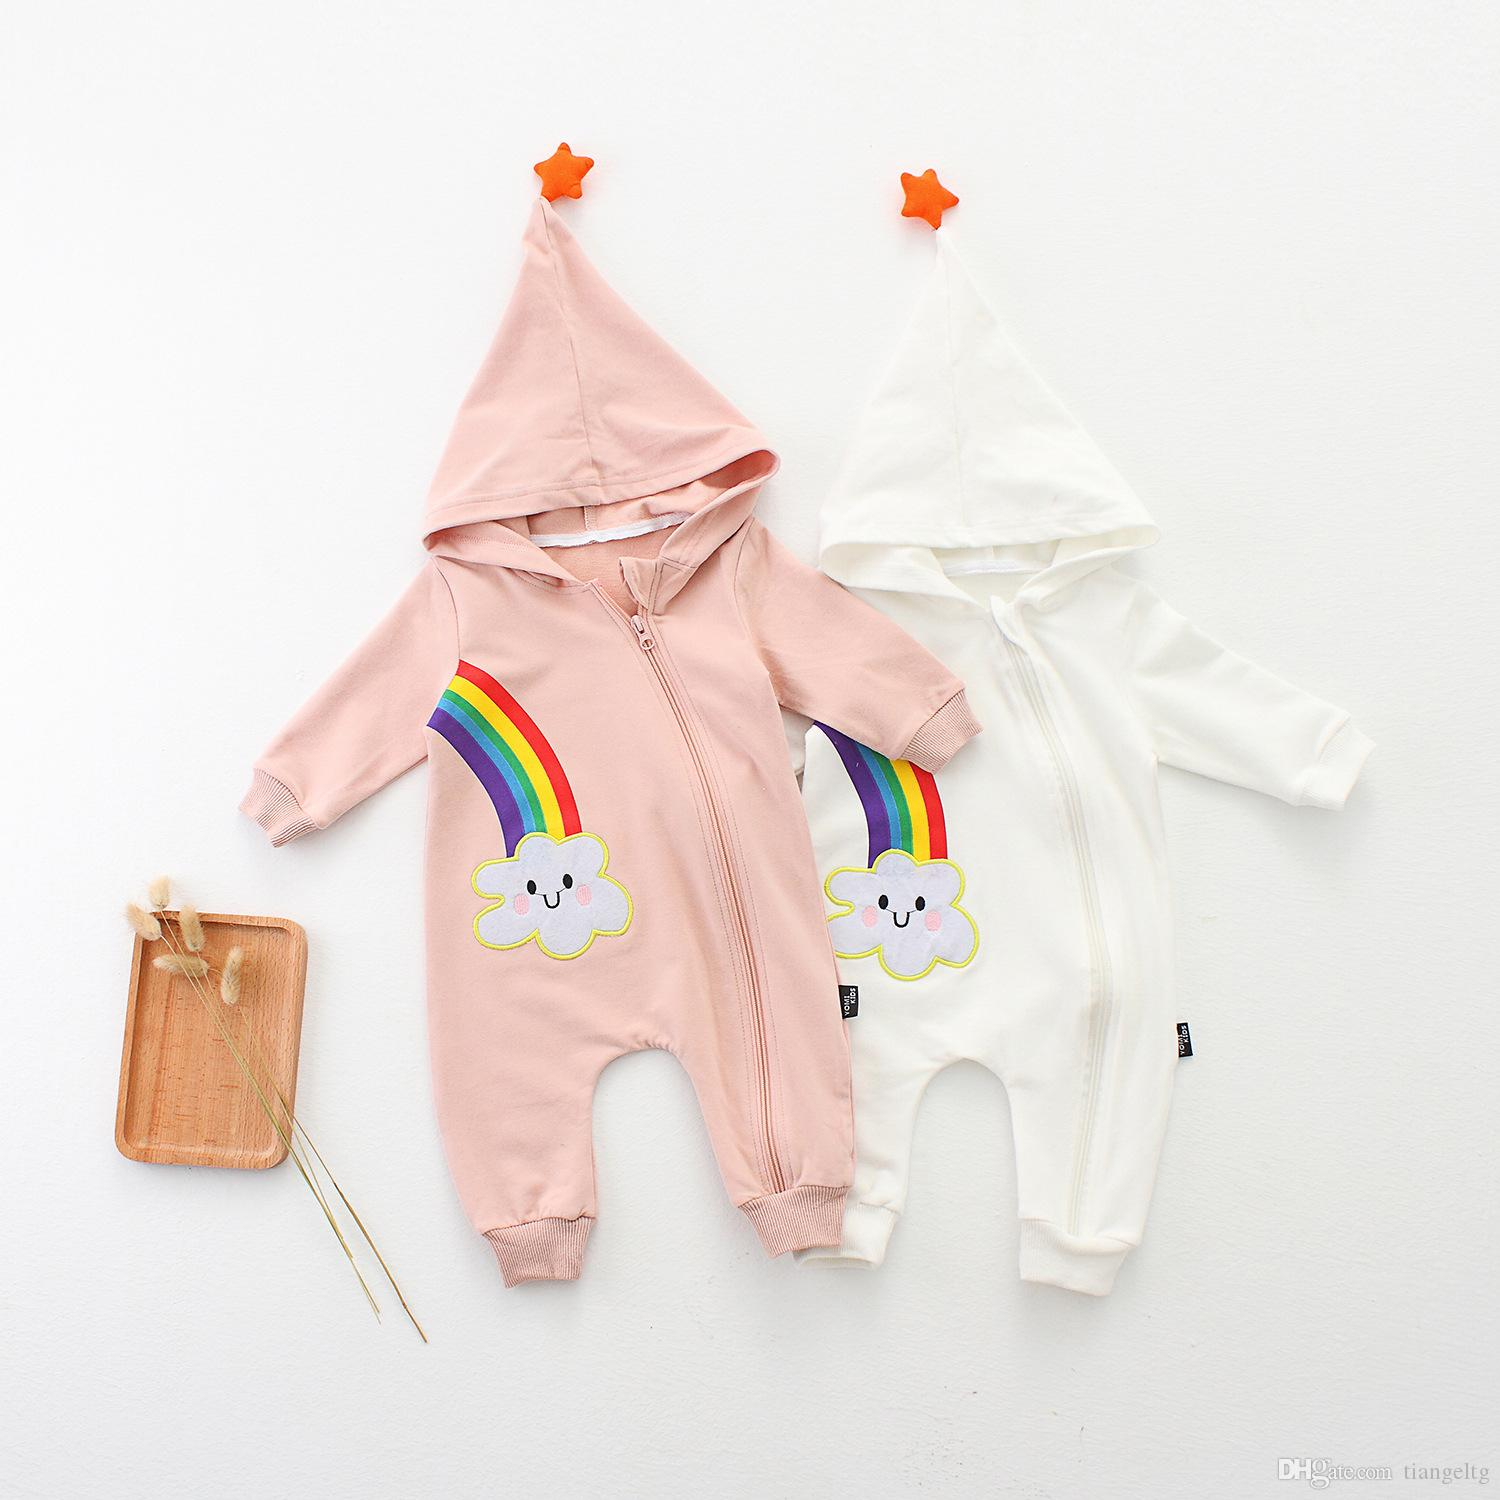 7bfa79c75abf 2019 Baby Rainbow Hooded Romper With Star Boy Girls Cotton Spring Autumn  Jumpsuit Long Sleeve Zip 0 24M From Tiangeltg